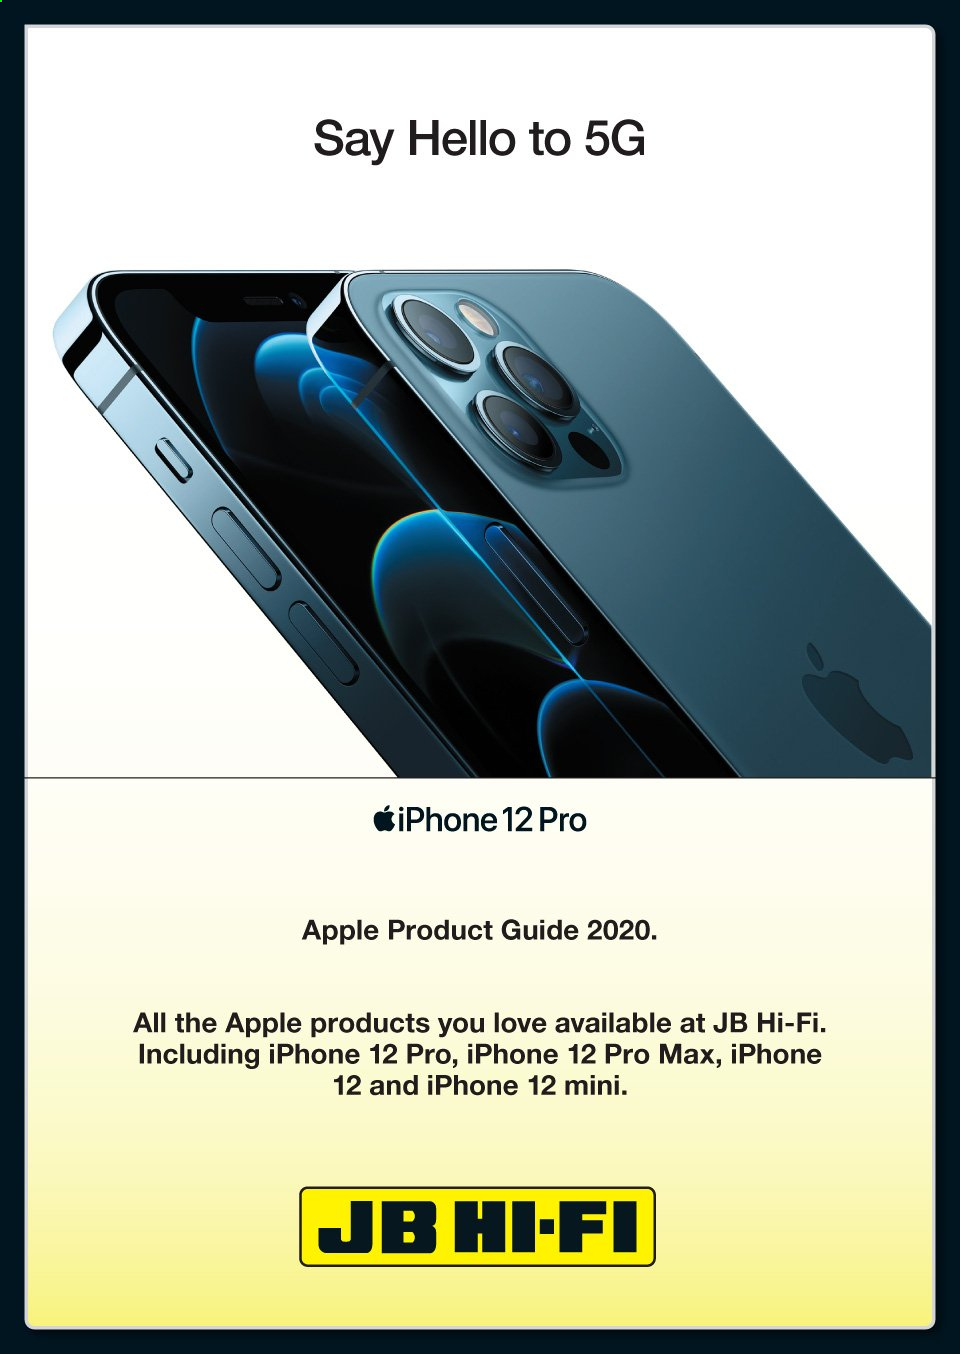 JB Hi-Fi mailer - 13.11.2020 - 02.12.2020 - Sales products - apple, iphone, hi-fi, apples. Page 1.